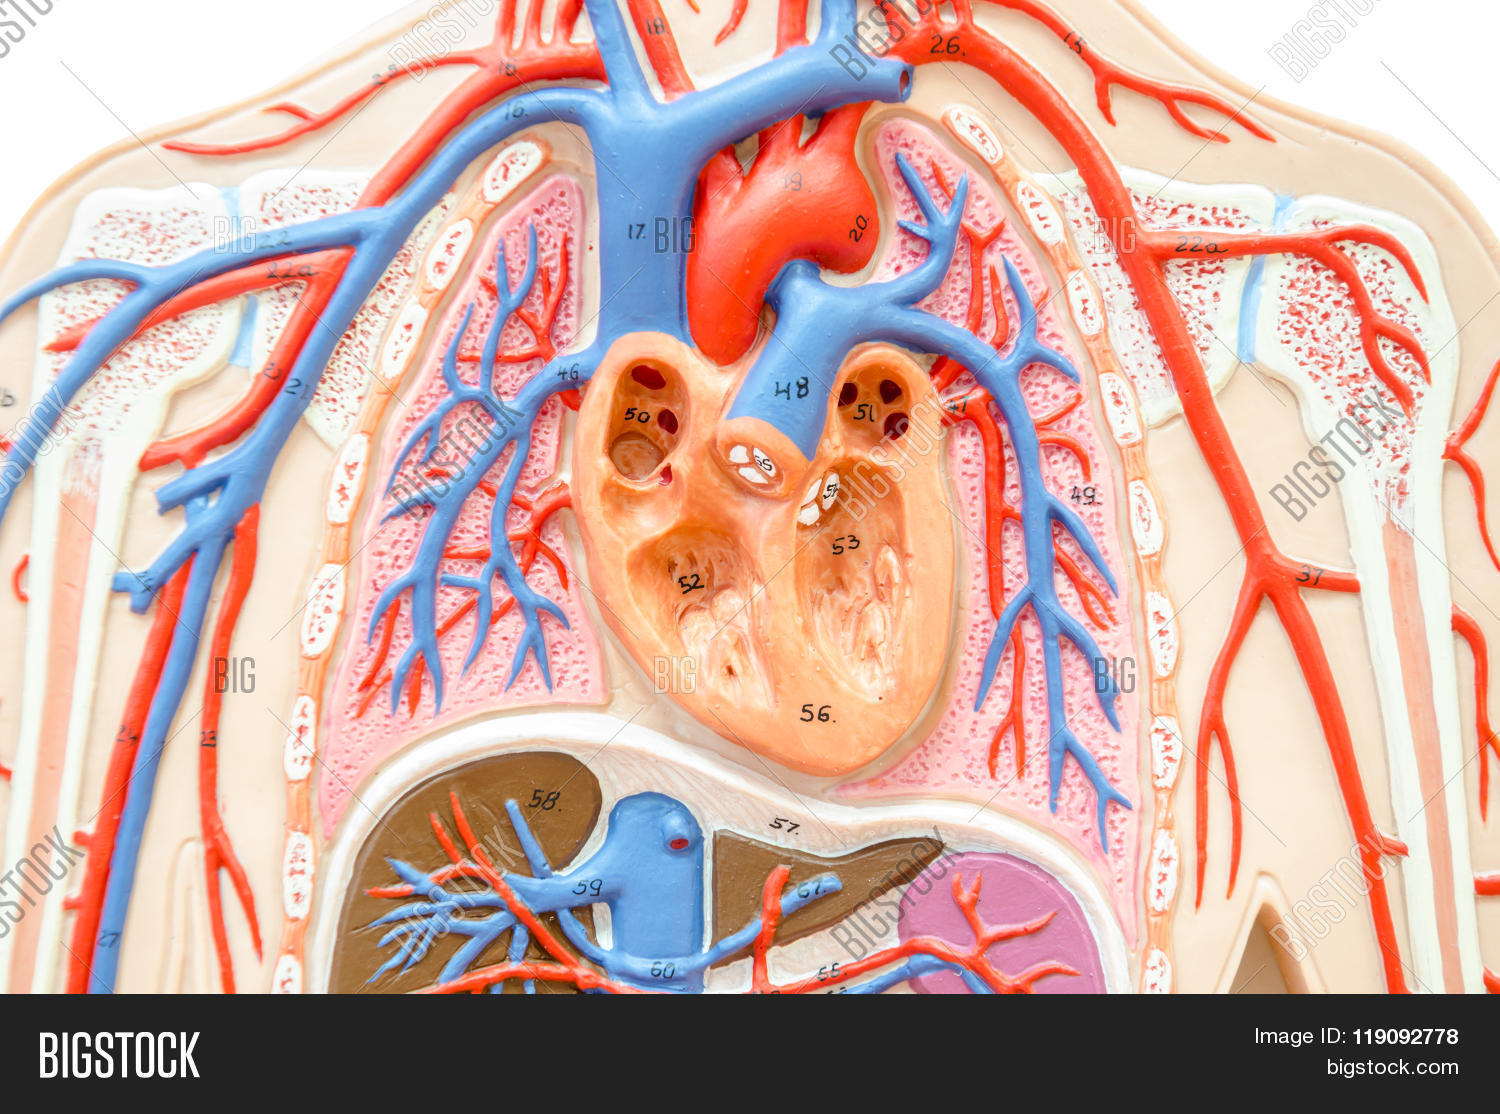 Model human body liver image photo free trial bigstock model human body with liver kidney lungs and heart ccuart Choice Image